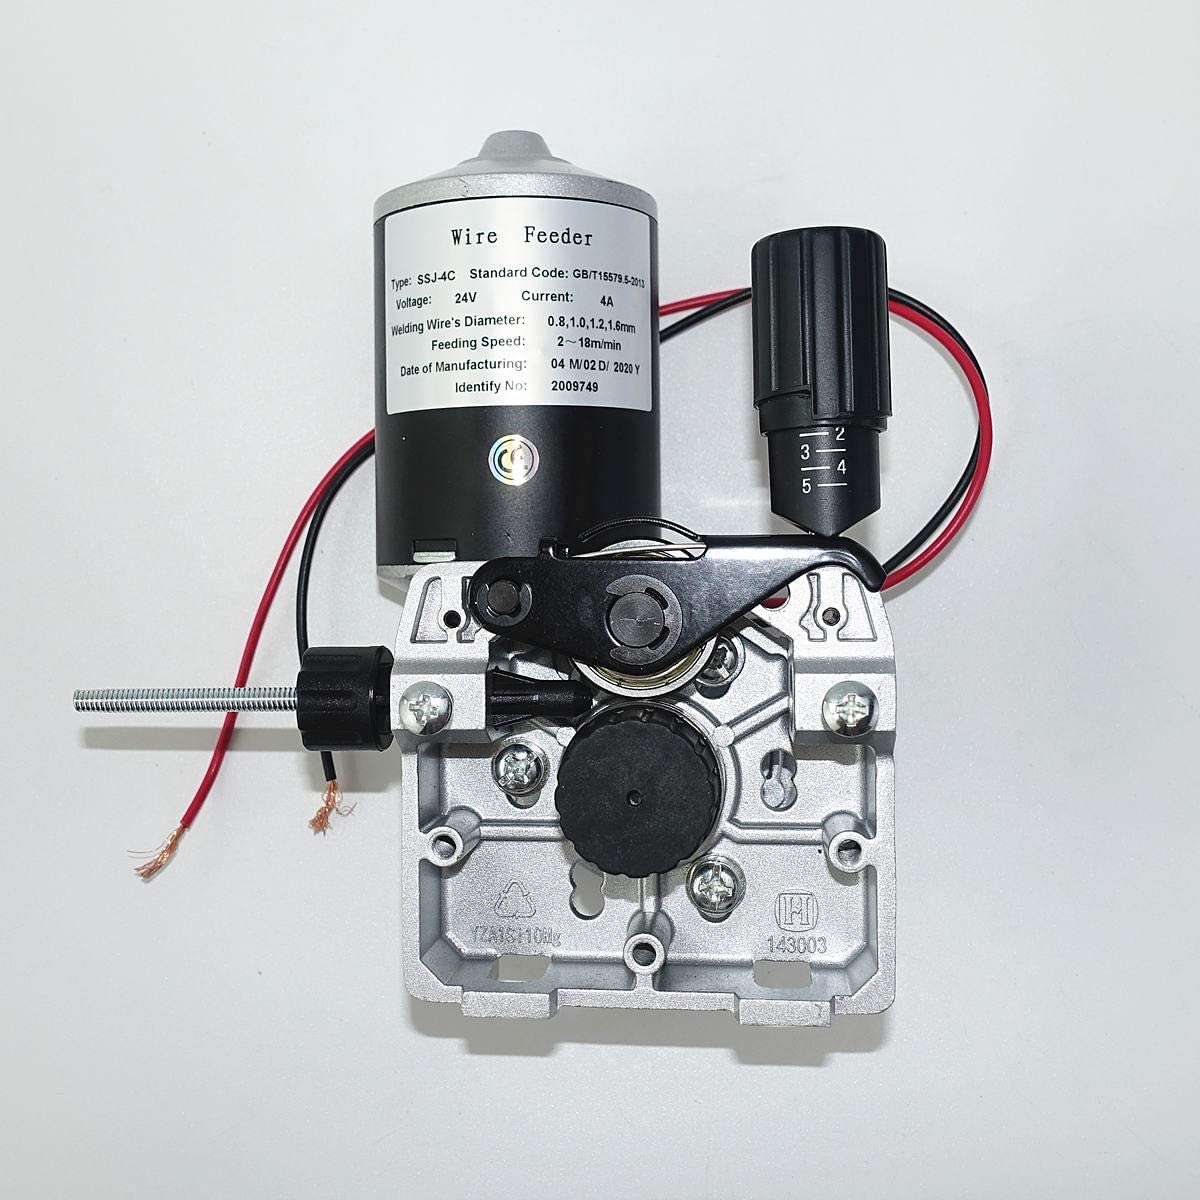 Welding Wire Feeder Assembly 24v Dc Wire Feed Motor With Aluminum Alloy Flame Ssj 4c Amazon Co Uk Diy Tools